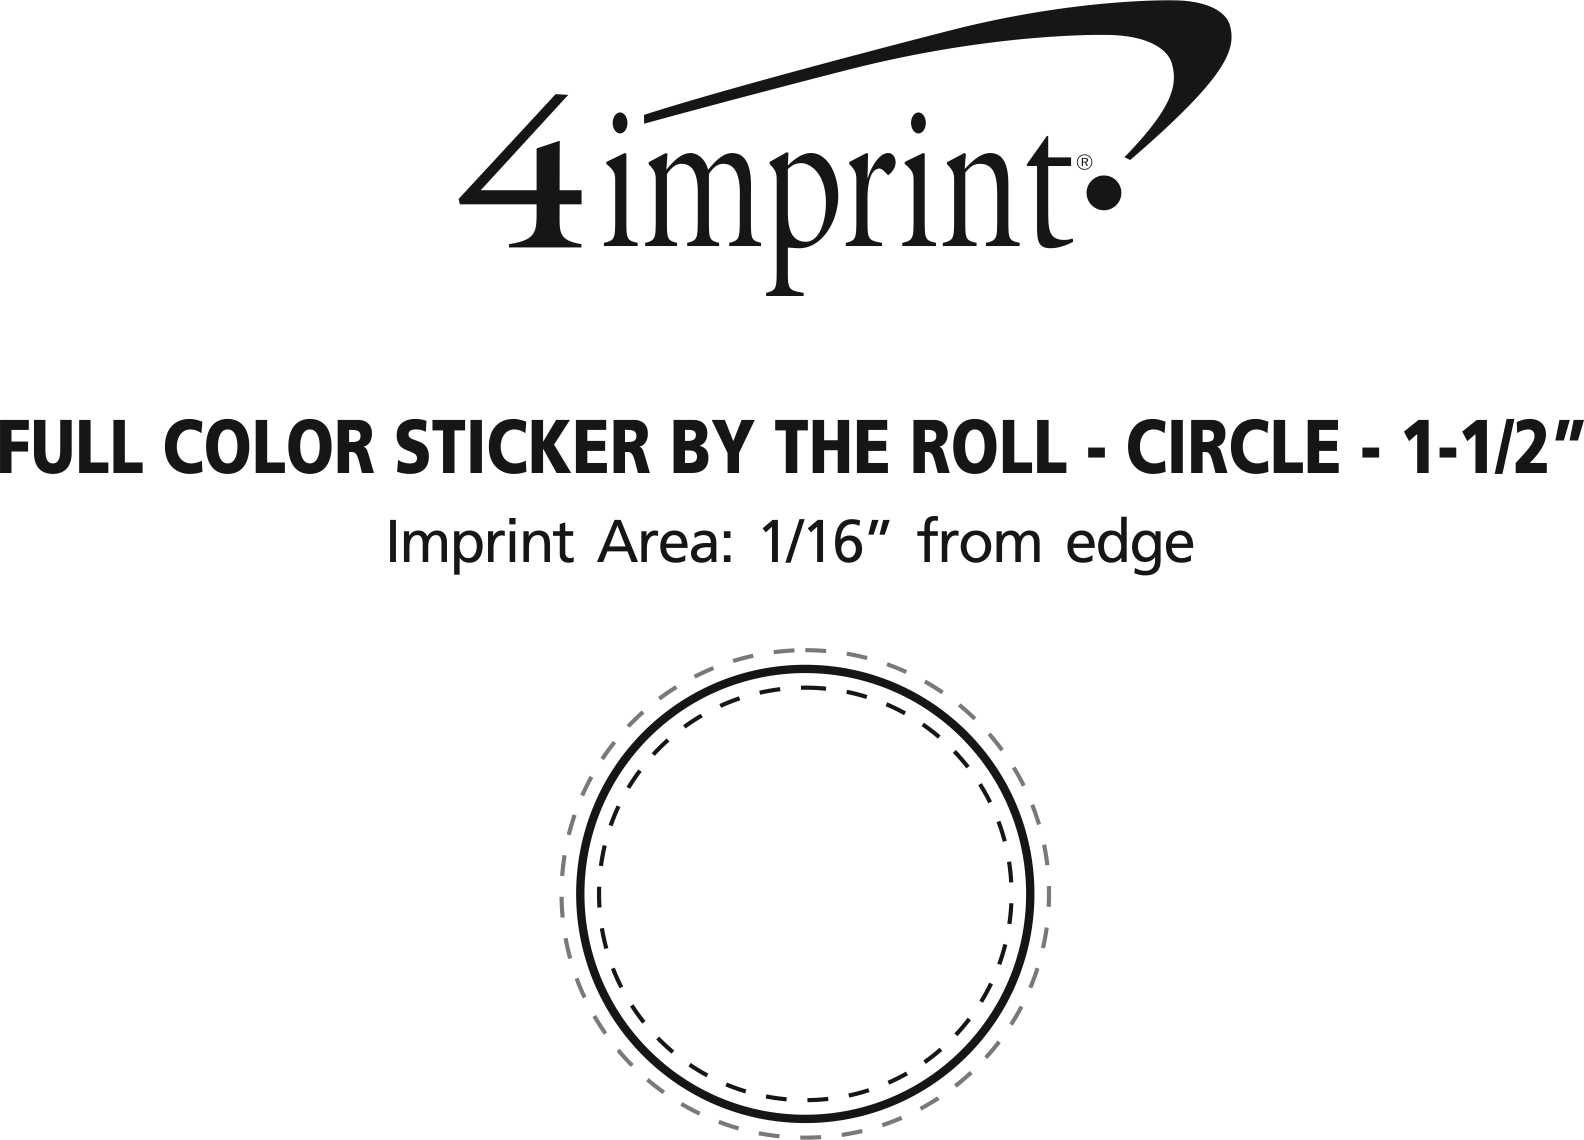 """Imprint Area of Full Color Sticker by the Roll - Circle - 1-1/2"""""""